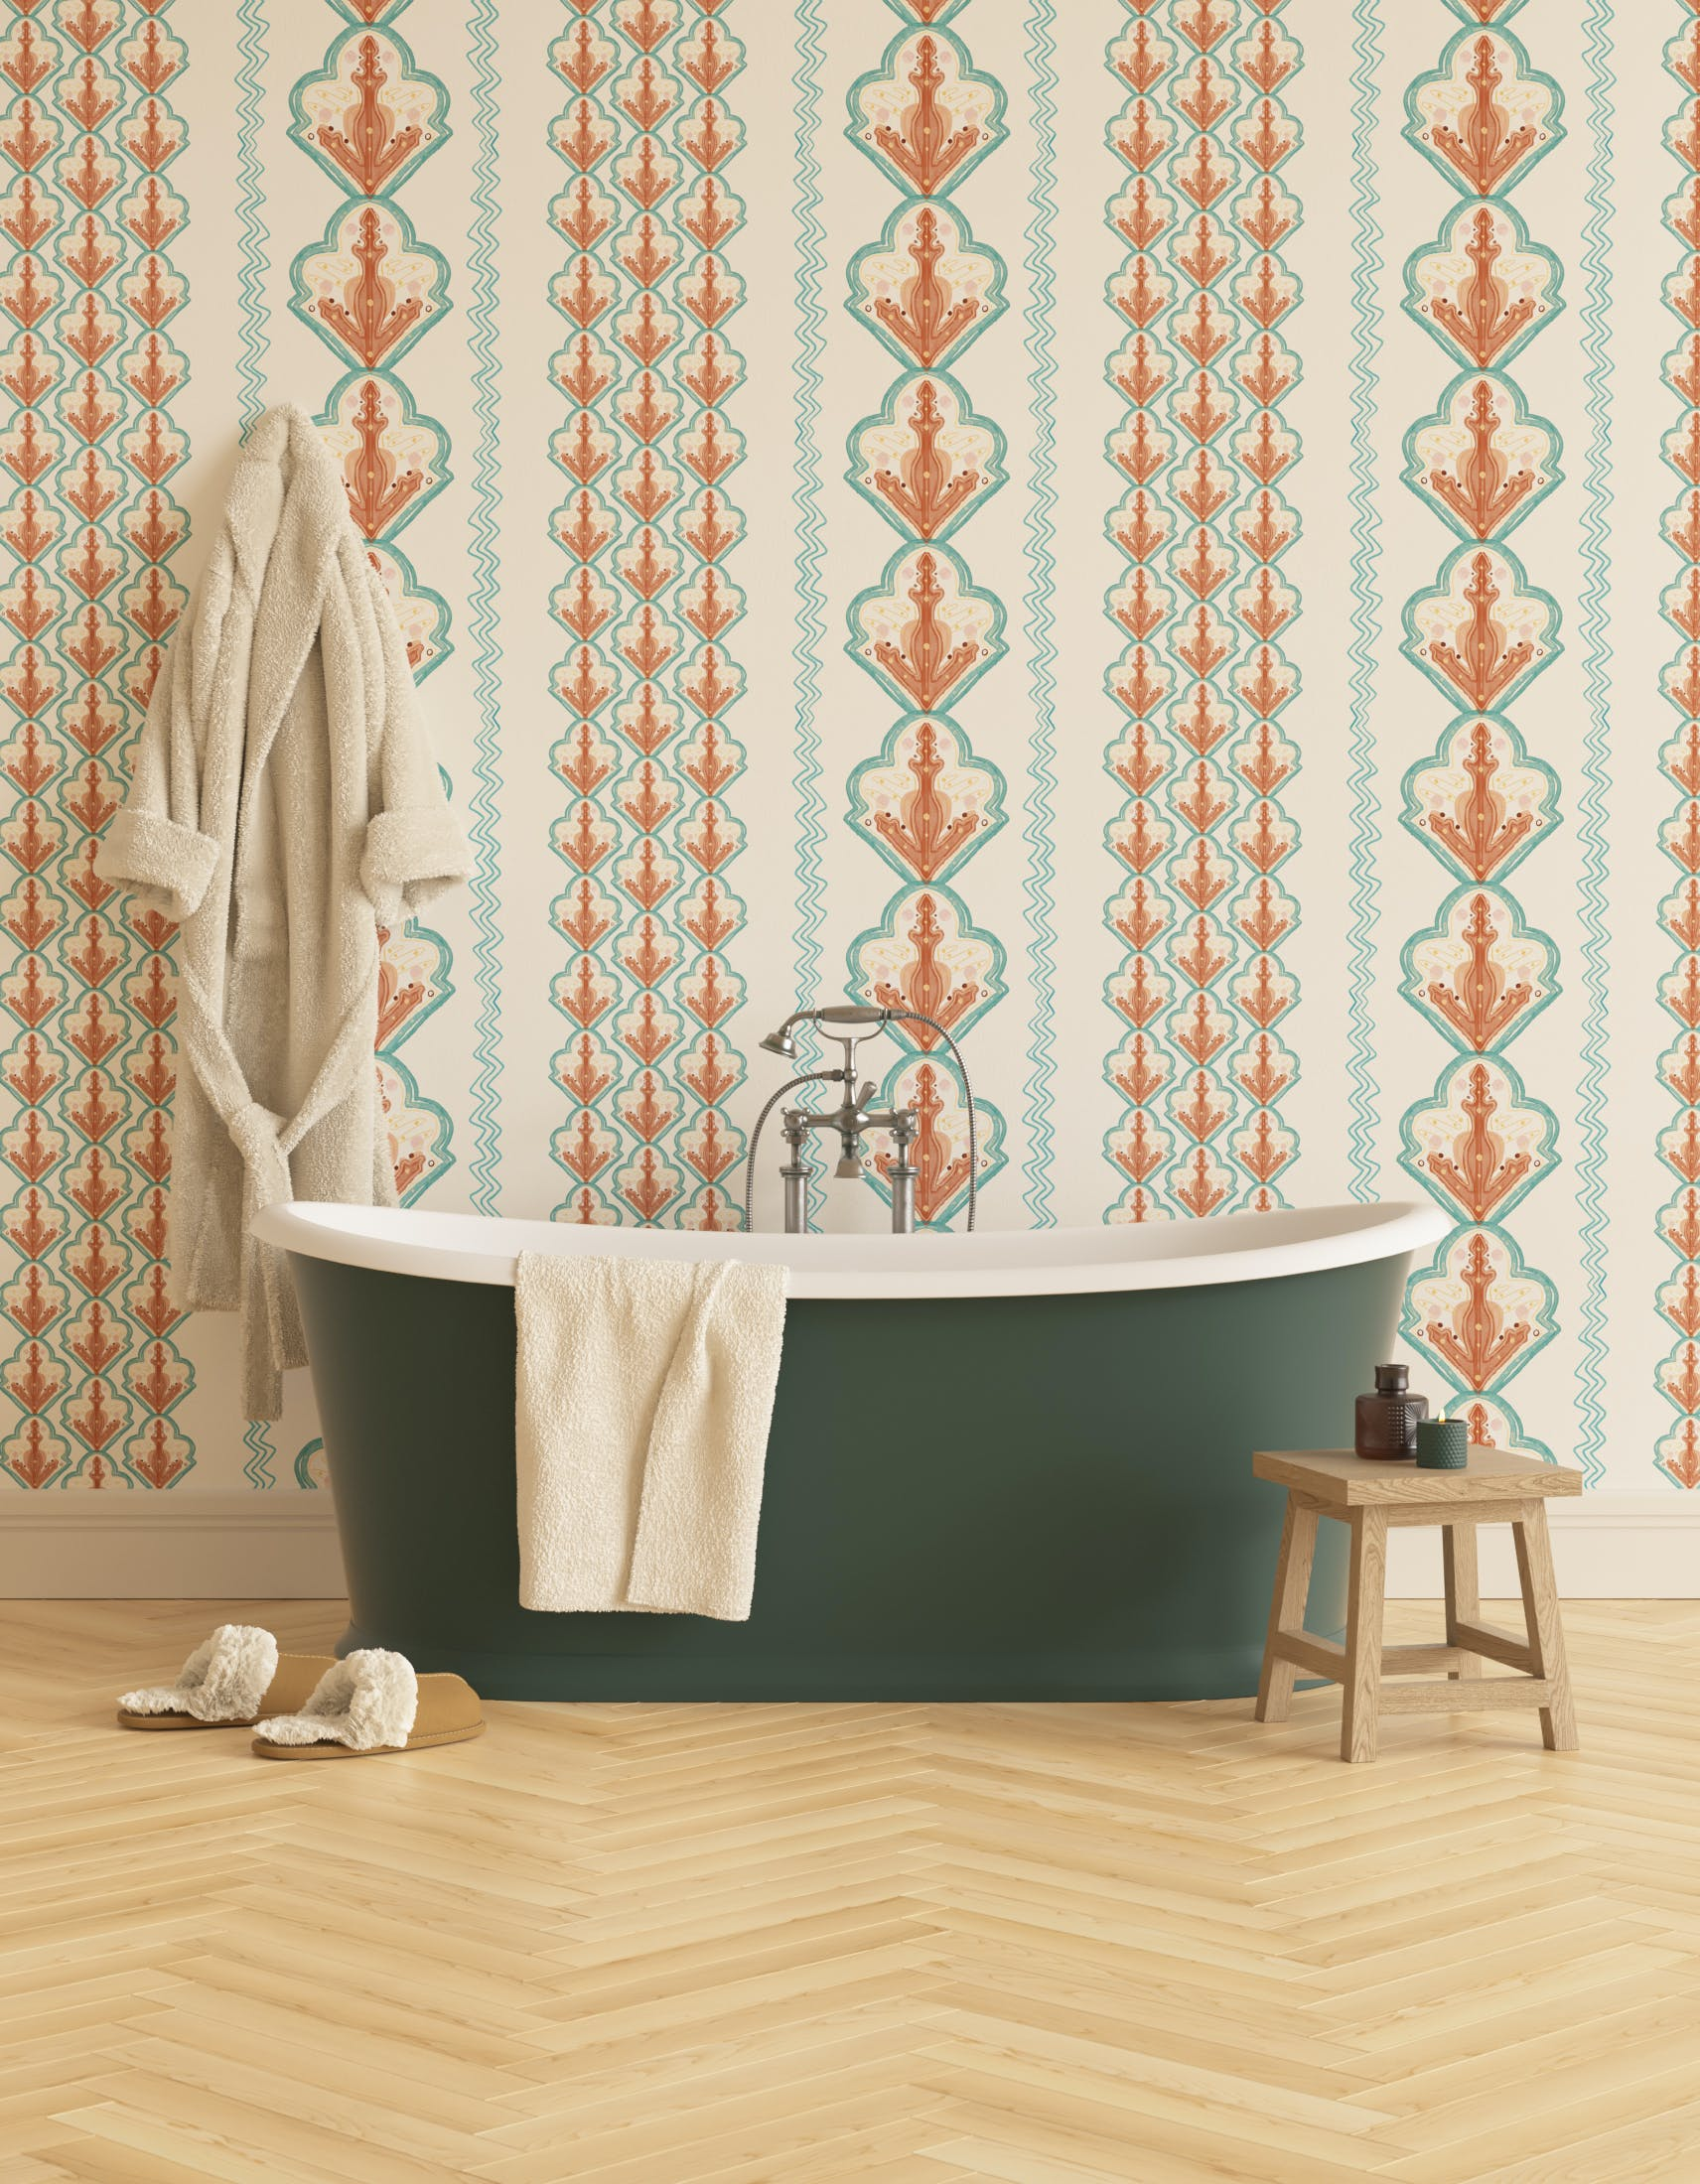 Bathroom decorated with Lick x Lottie McDowell Travelling Tiles 02 orange patterned mosaic wallpaper